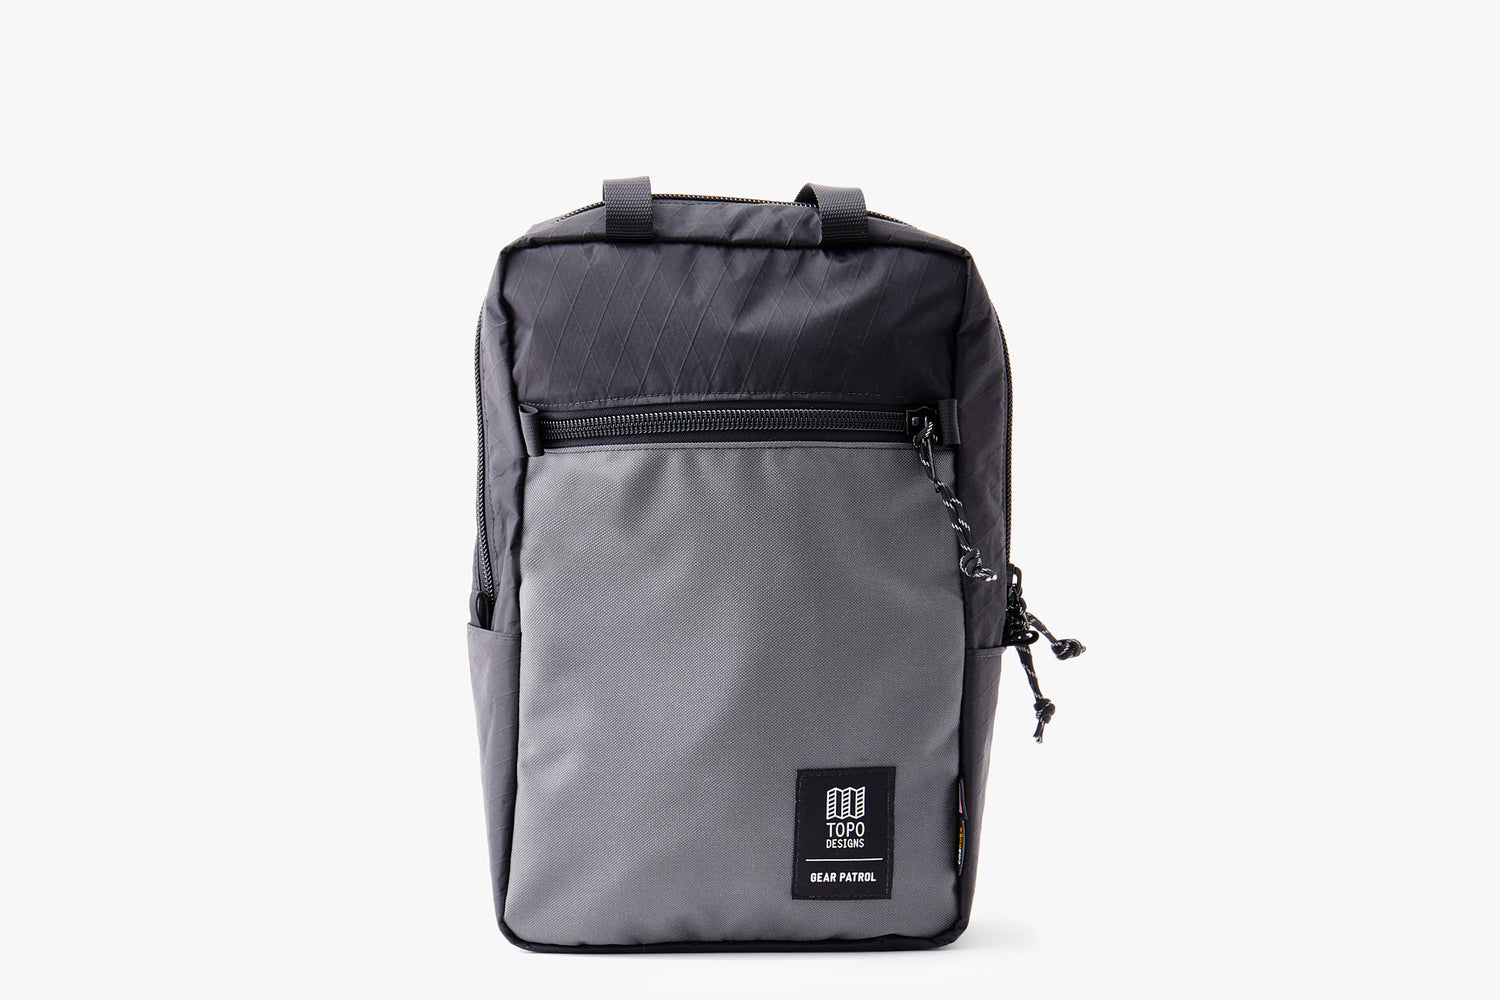 Black/Grey - Topo Designs x Gear Patrol Backpack Tote - Front